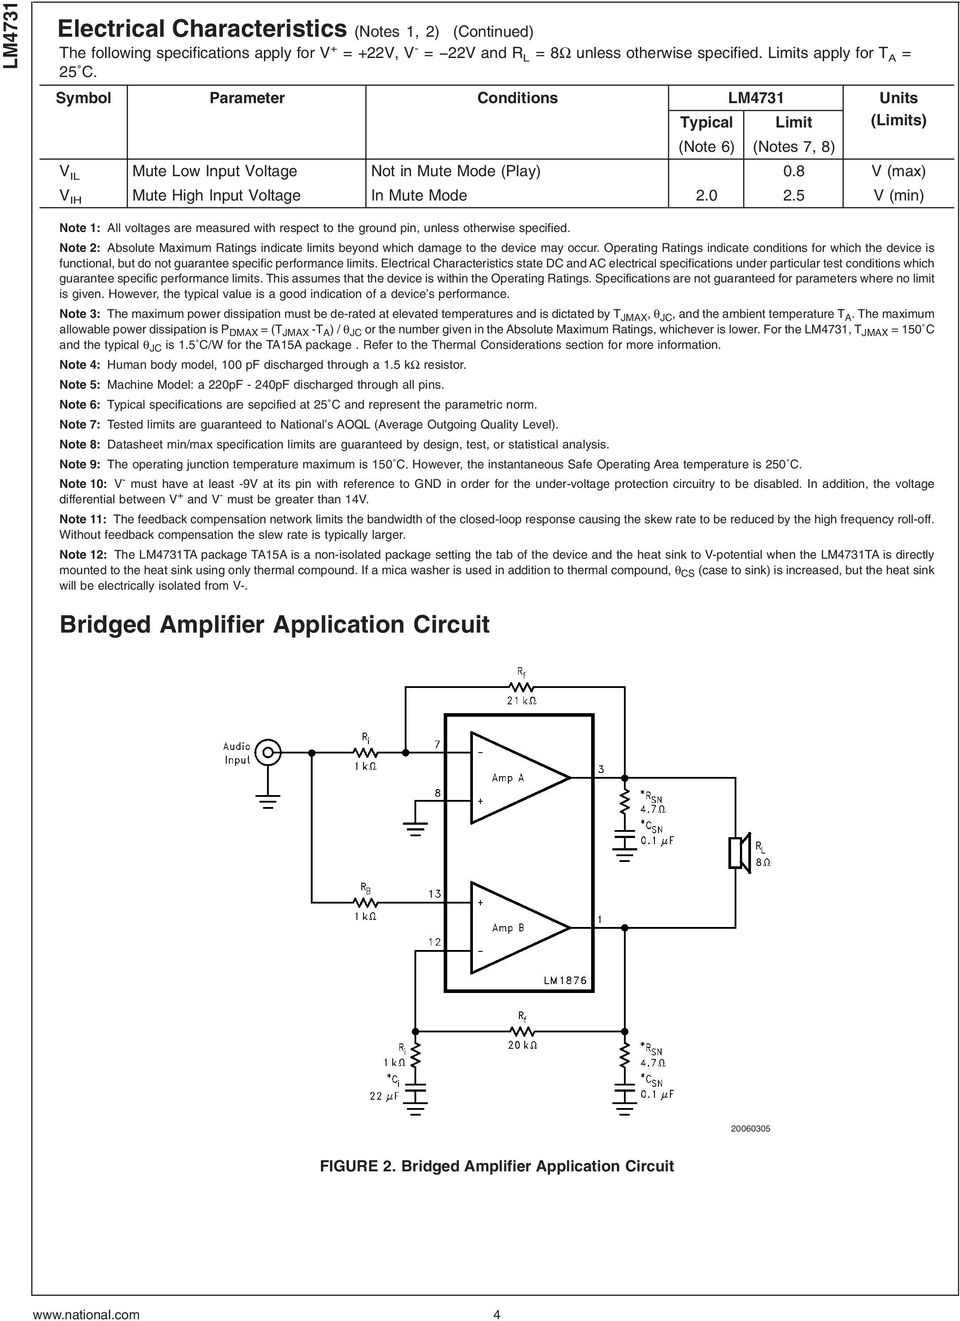 Lm4731 Stereo 25w Audio Power Amplifier With Mute And Standby Modes Schematic Circuit Diagram Using Lm4992 Bridged Application 4 5 V Min Note 1 All Voltages Are Measured Respect To The